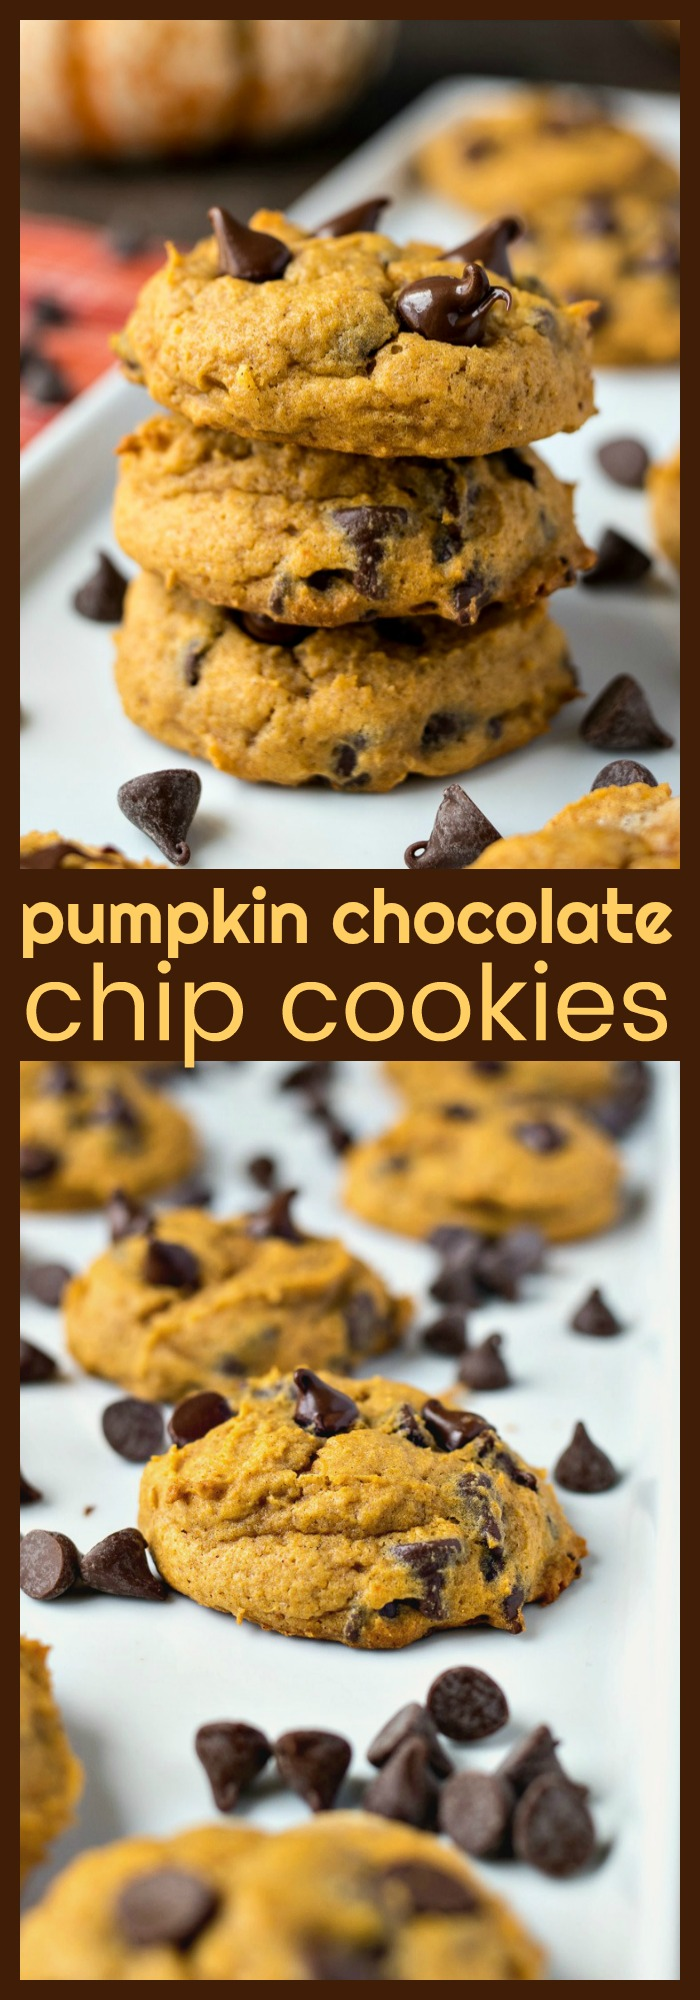 Pumpkin Chocolate Chip Cookies photo collage